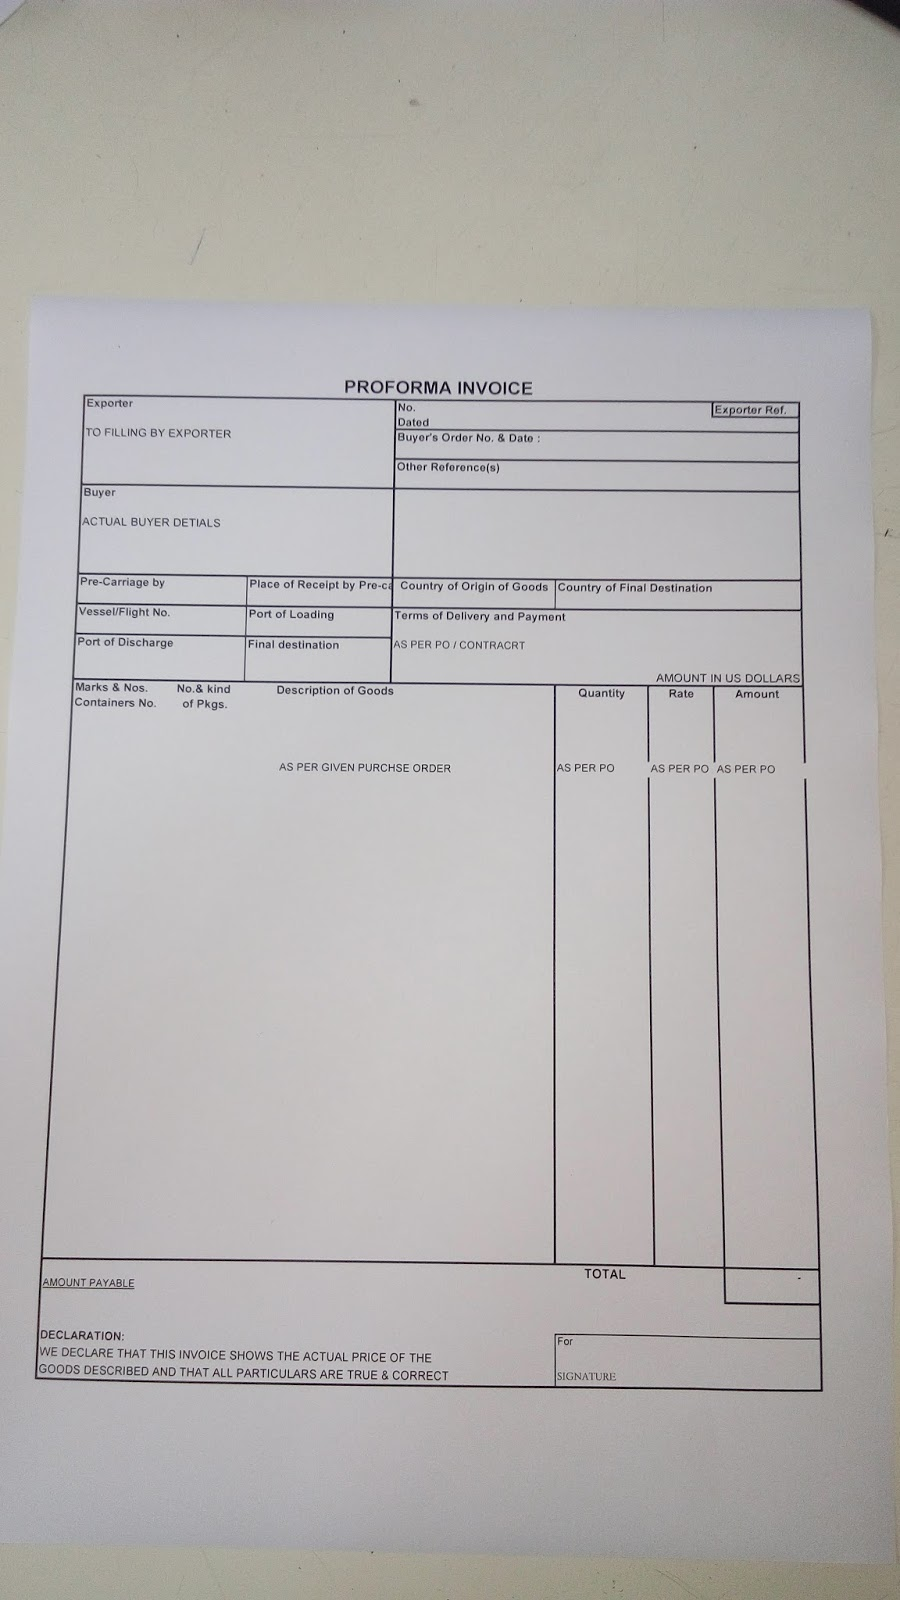 export documentation proforma invoice format and details monday 4 2016